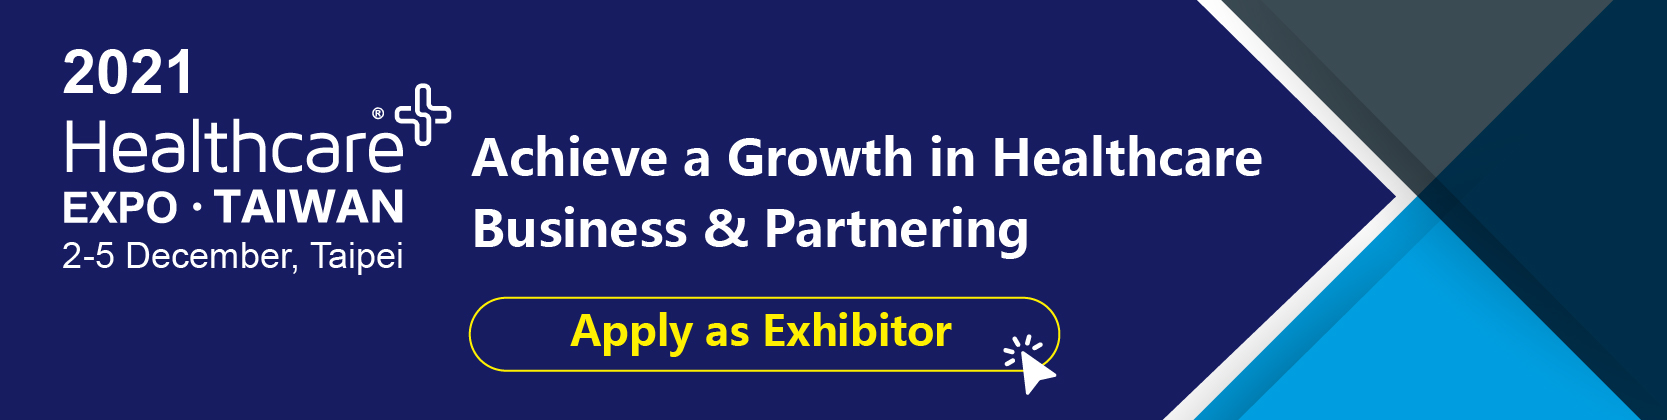 Achieve a Growth in Healthcare Business & Partnering